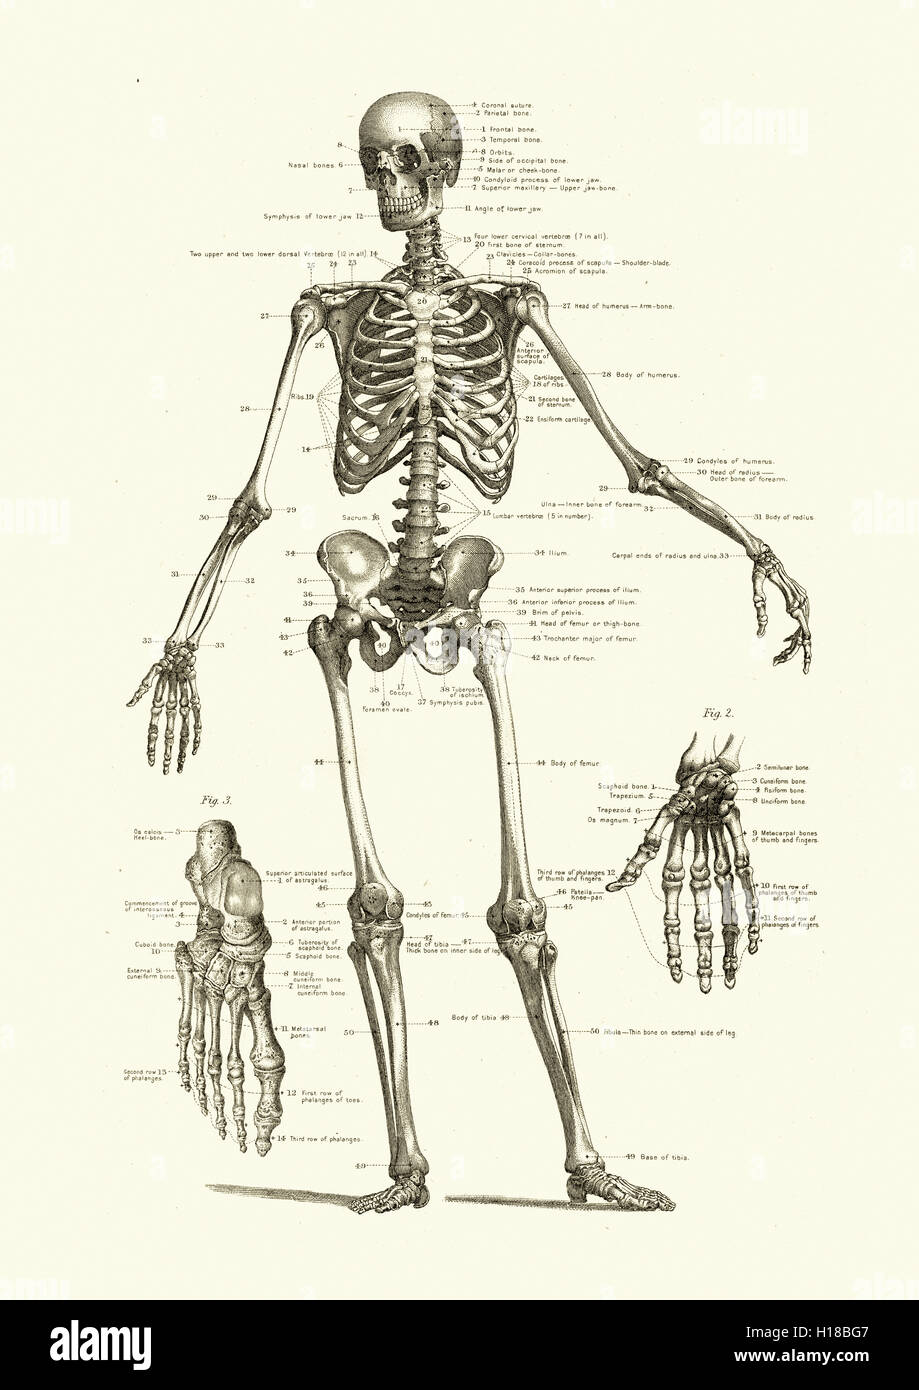 Human Skeleton Showing The Bones Of The Body Stock Photo 121271927